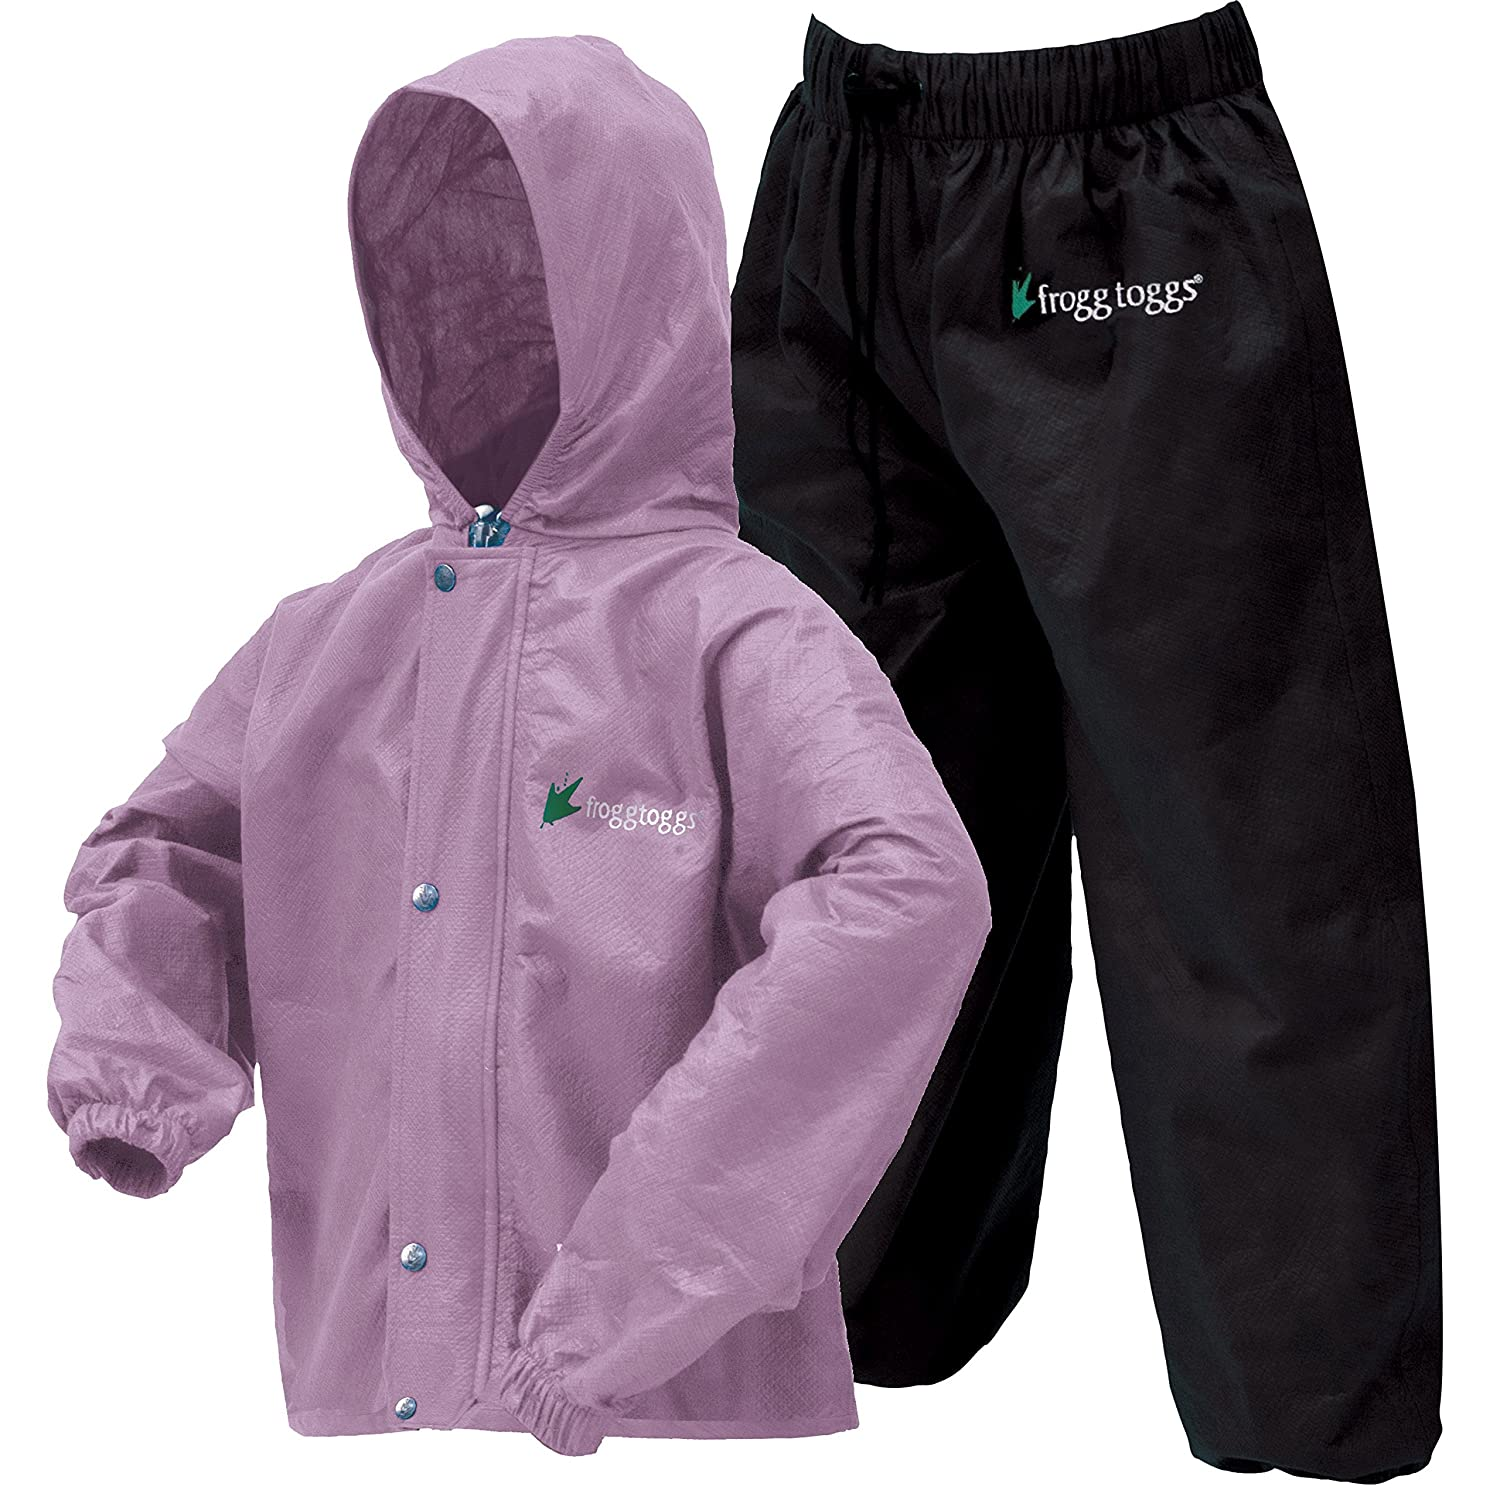 Frogg Toggs Polly Woggs Kids Rain Suit Sportsman Supply Inc. PW6032-P